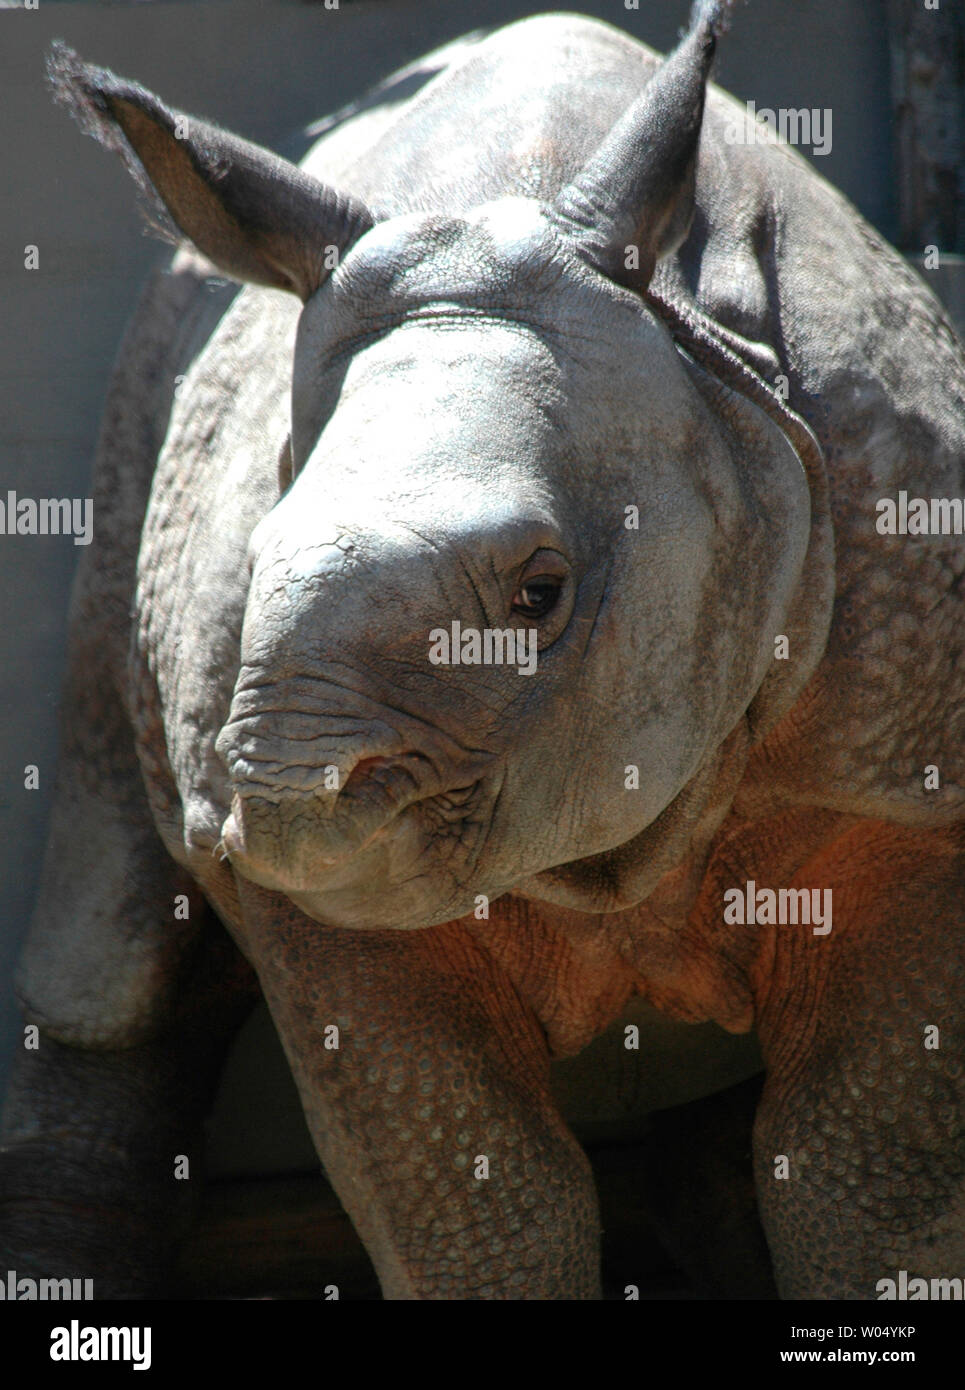 Newly Named Ecko A 14 Week Old Indian Rhino Stands In His Enclosure At The San Diego Wild Animal Park April 14 2005 In San Diego California The 3 Month Old Rhino Born At The